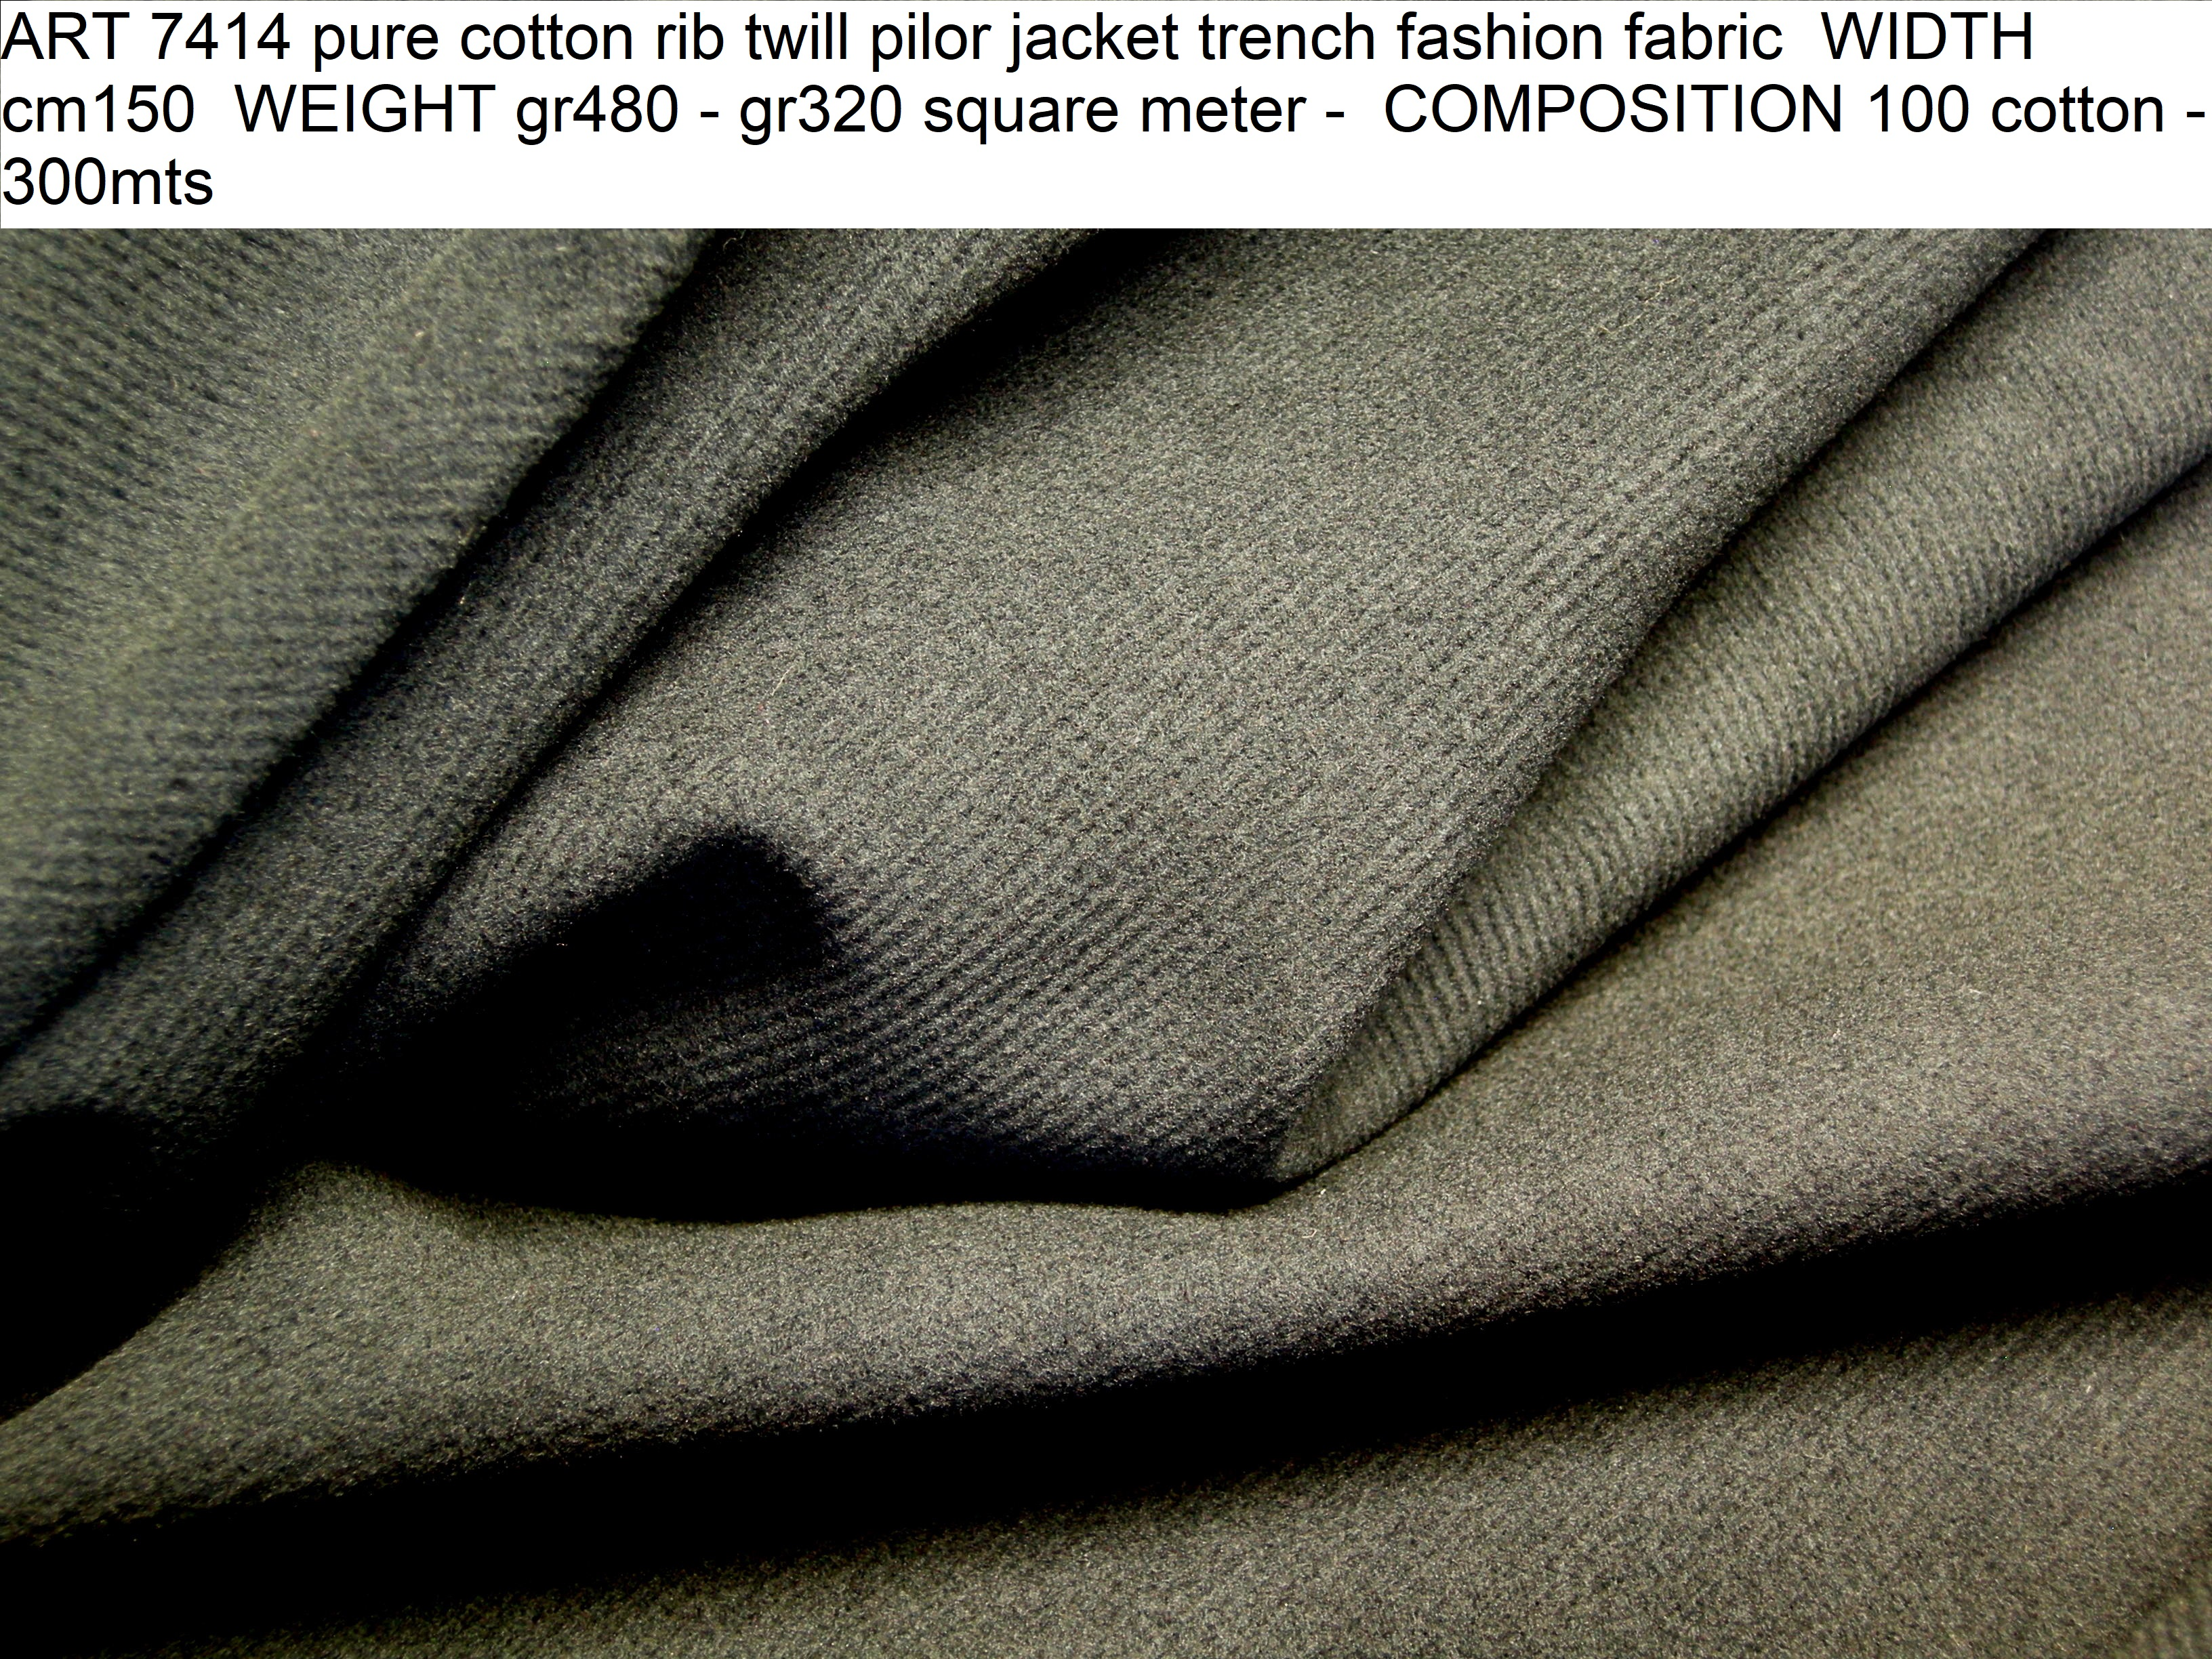 ART 7414 pure cotton rib twill pilor jacket trench fashion fabric WIDTH cm150 WEIGHT gr480 - gr320 square meter - COMPOSITION 100 cotton - 300mts